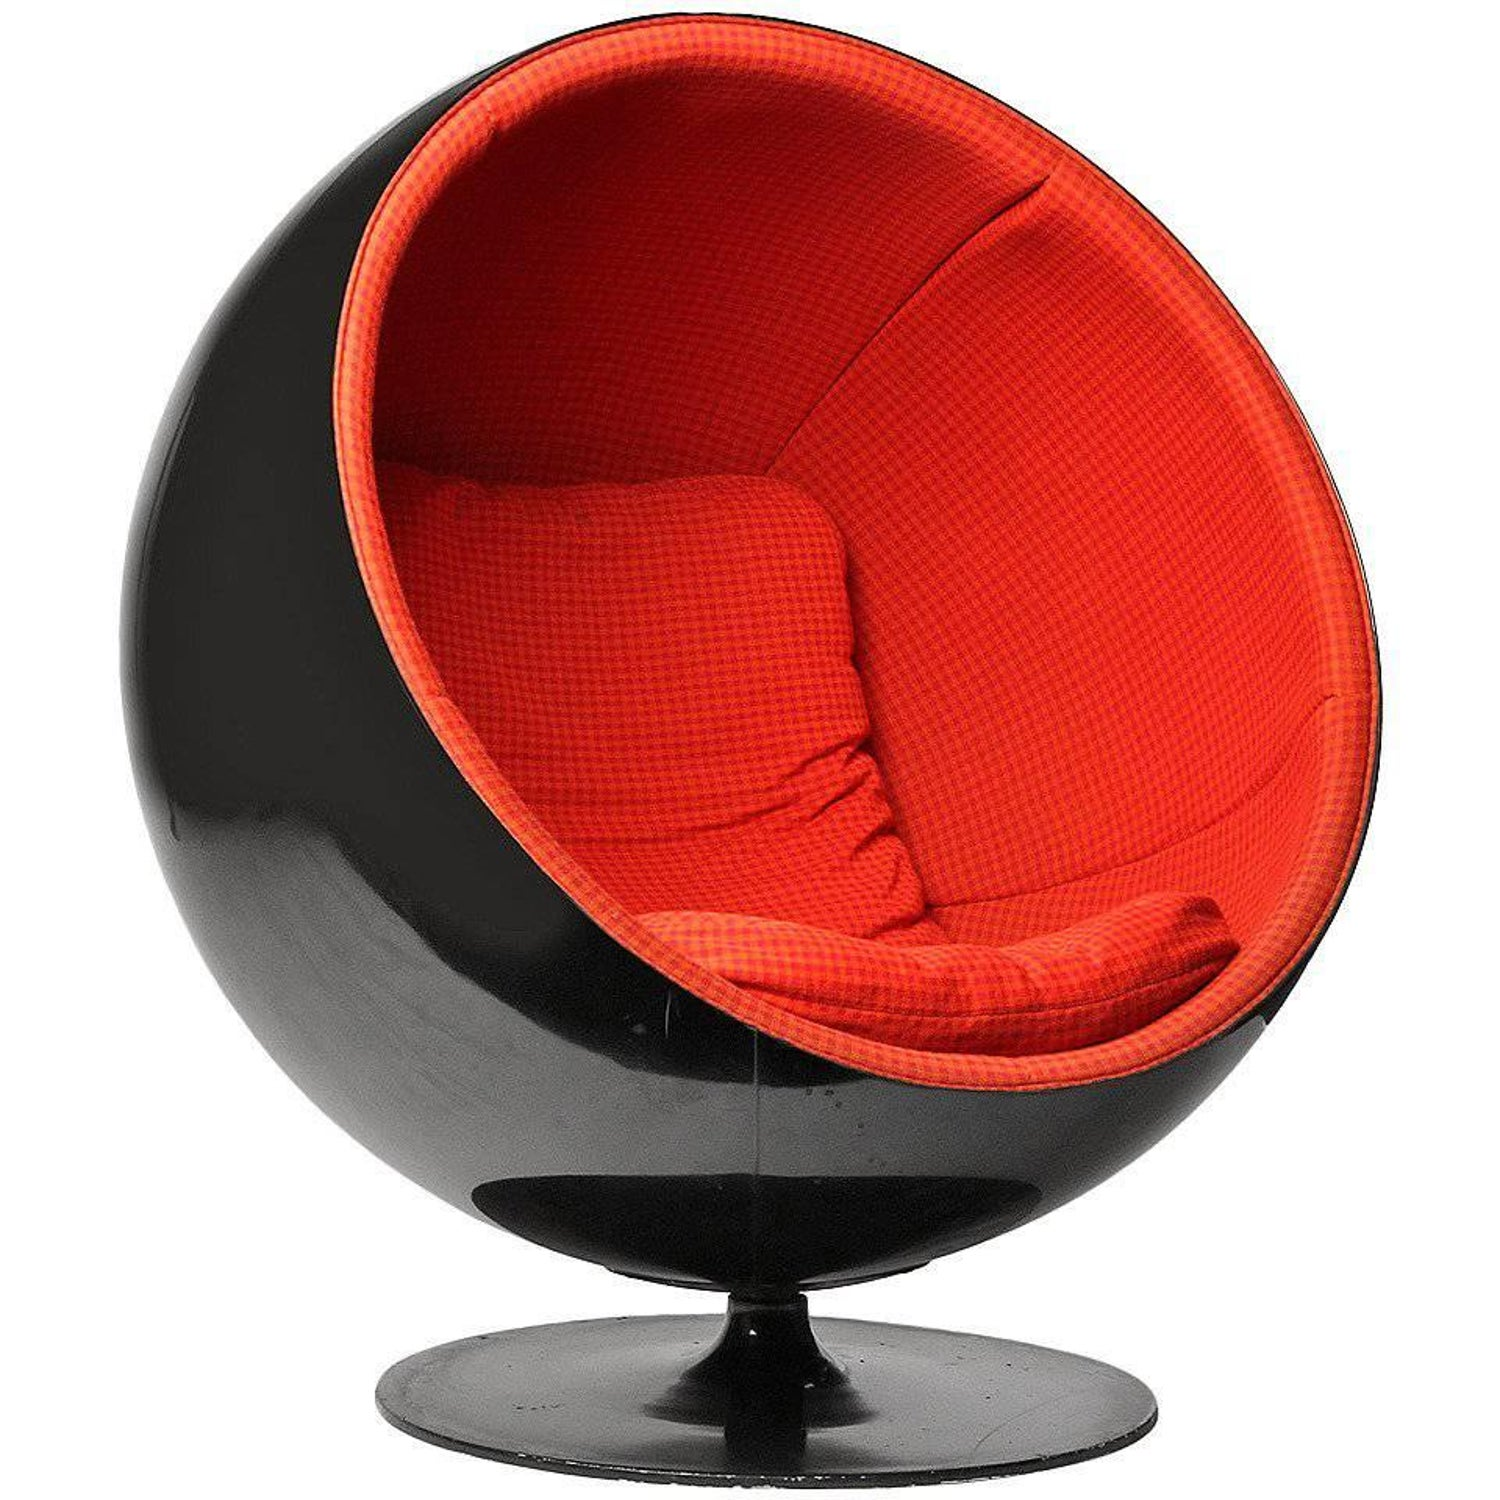 colors chair ball new ergo the chairs ergonomic original two